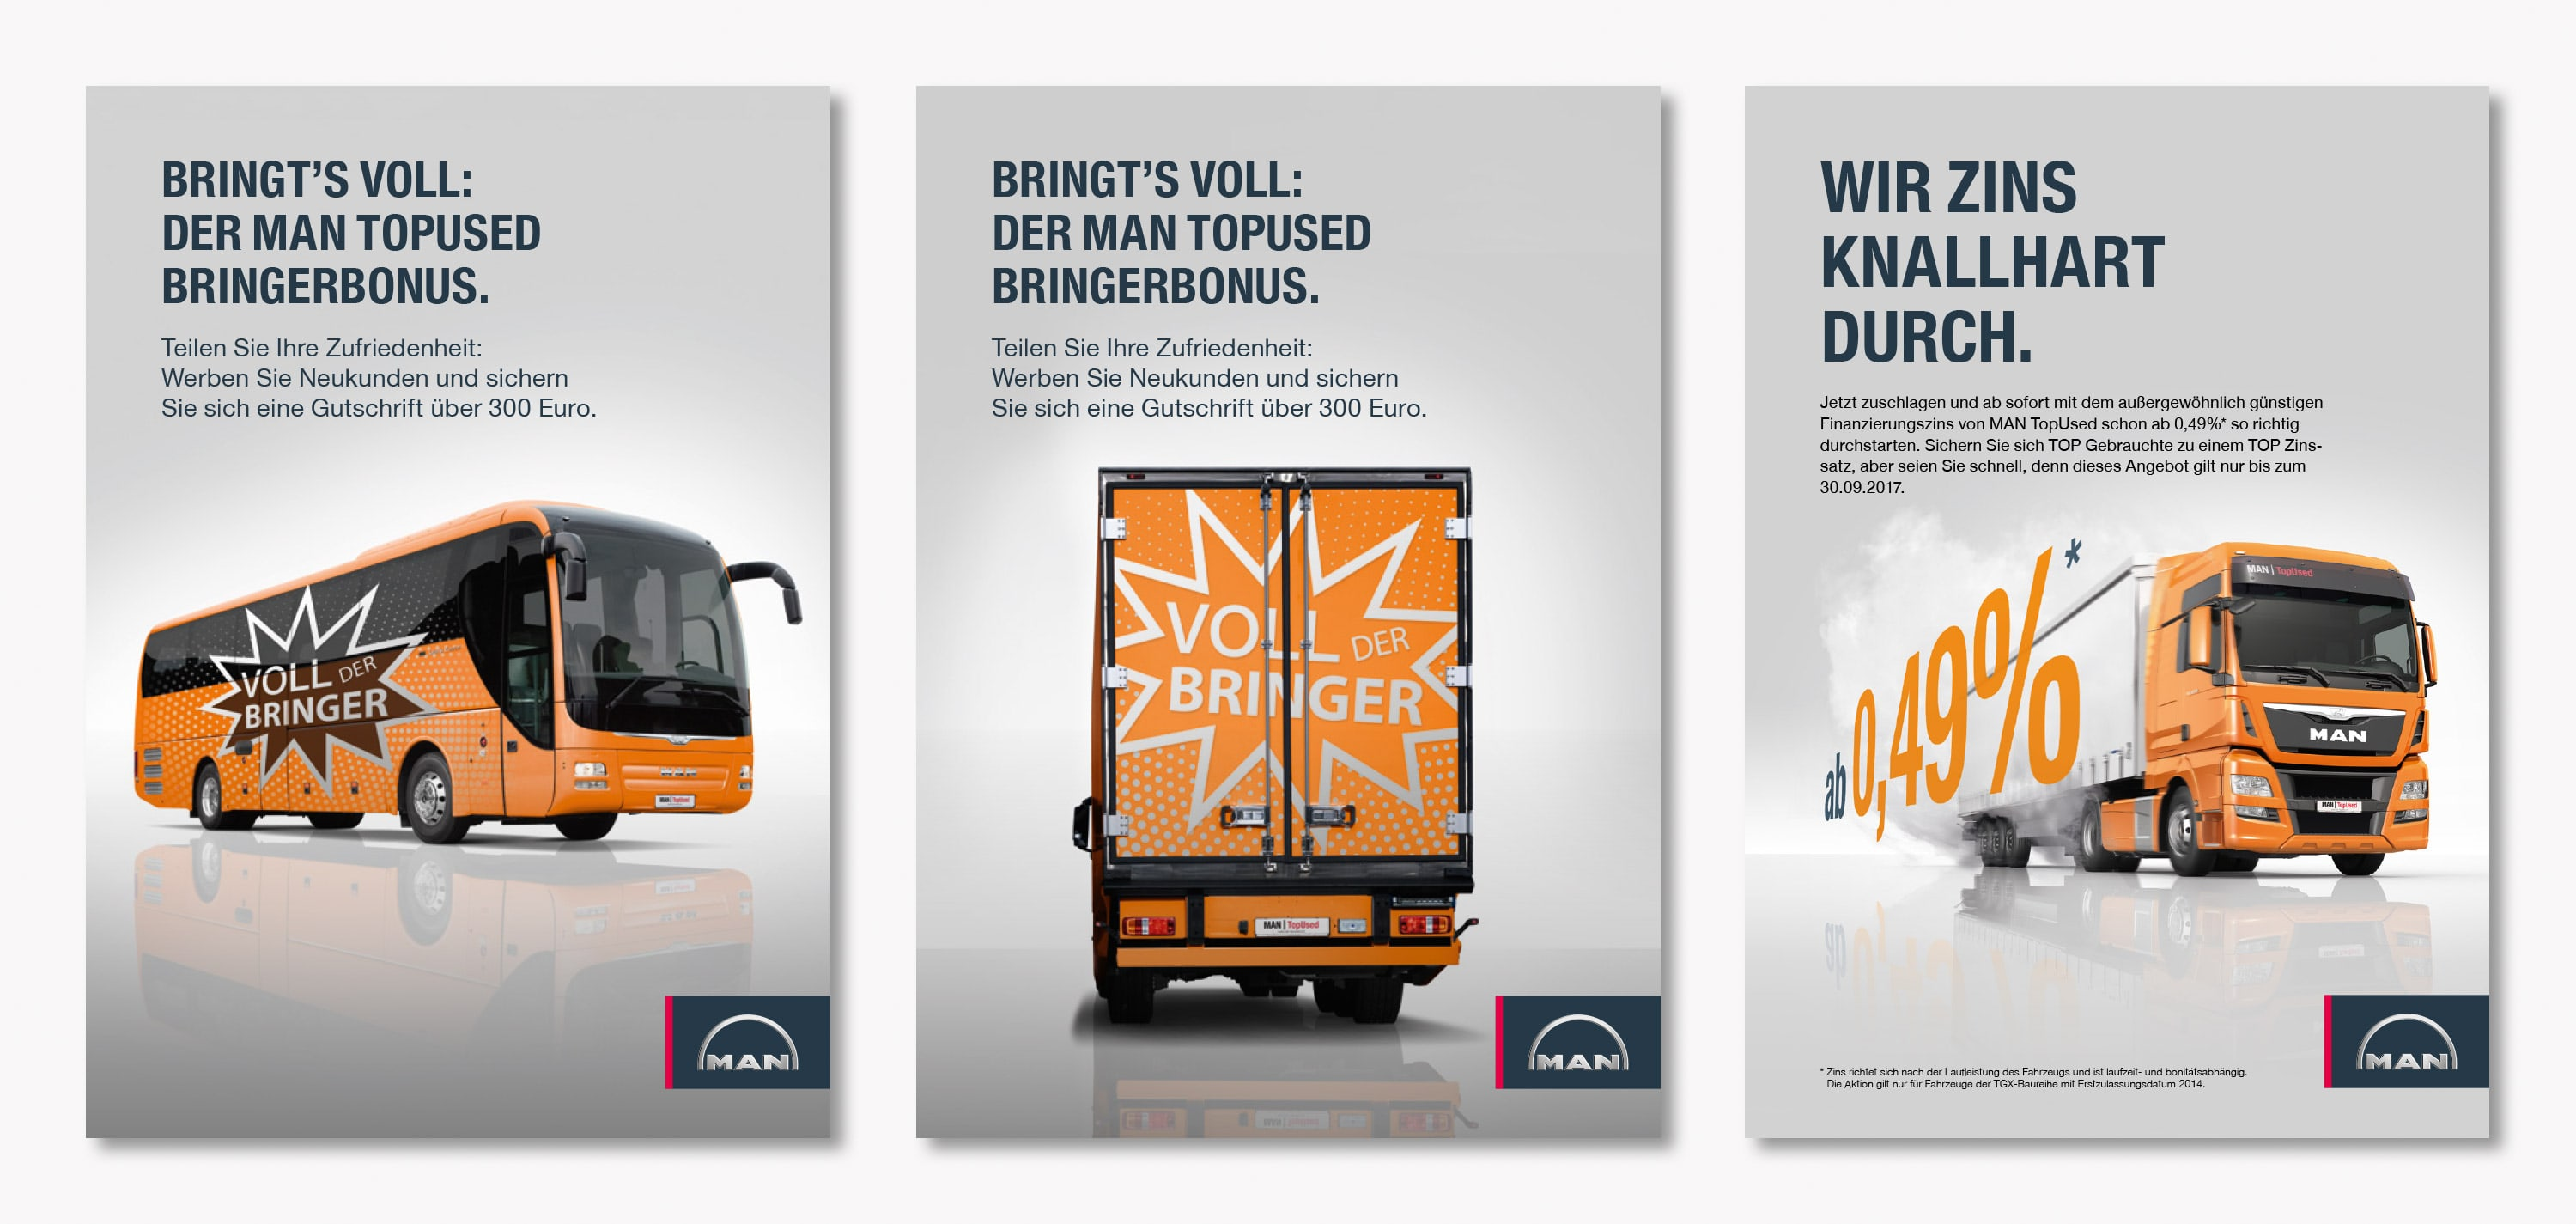 maxfath-man-truck-and-bus-top-used-corporate-design-kampagnen-poster